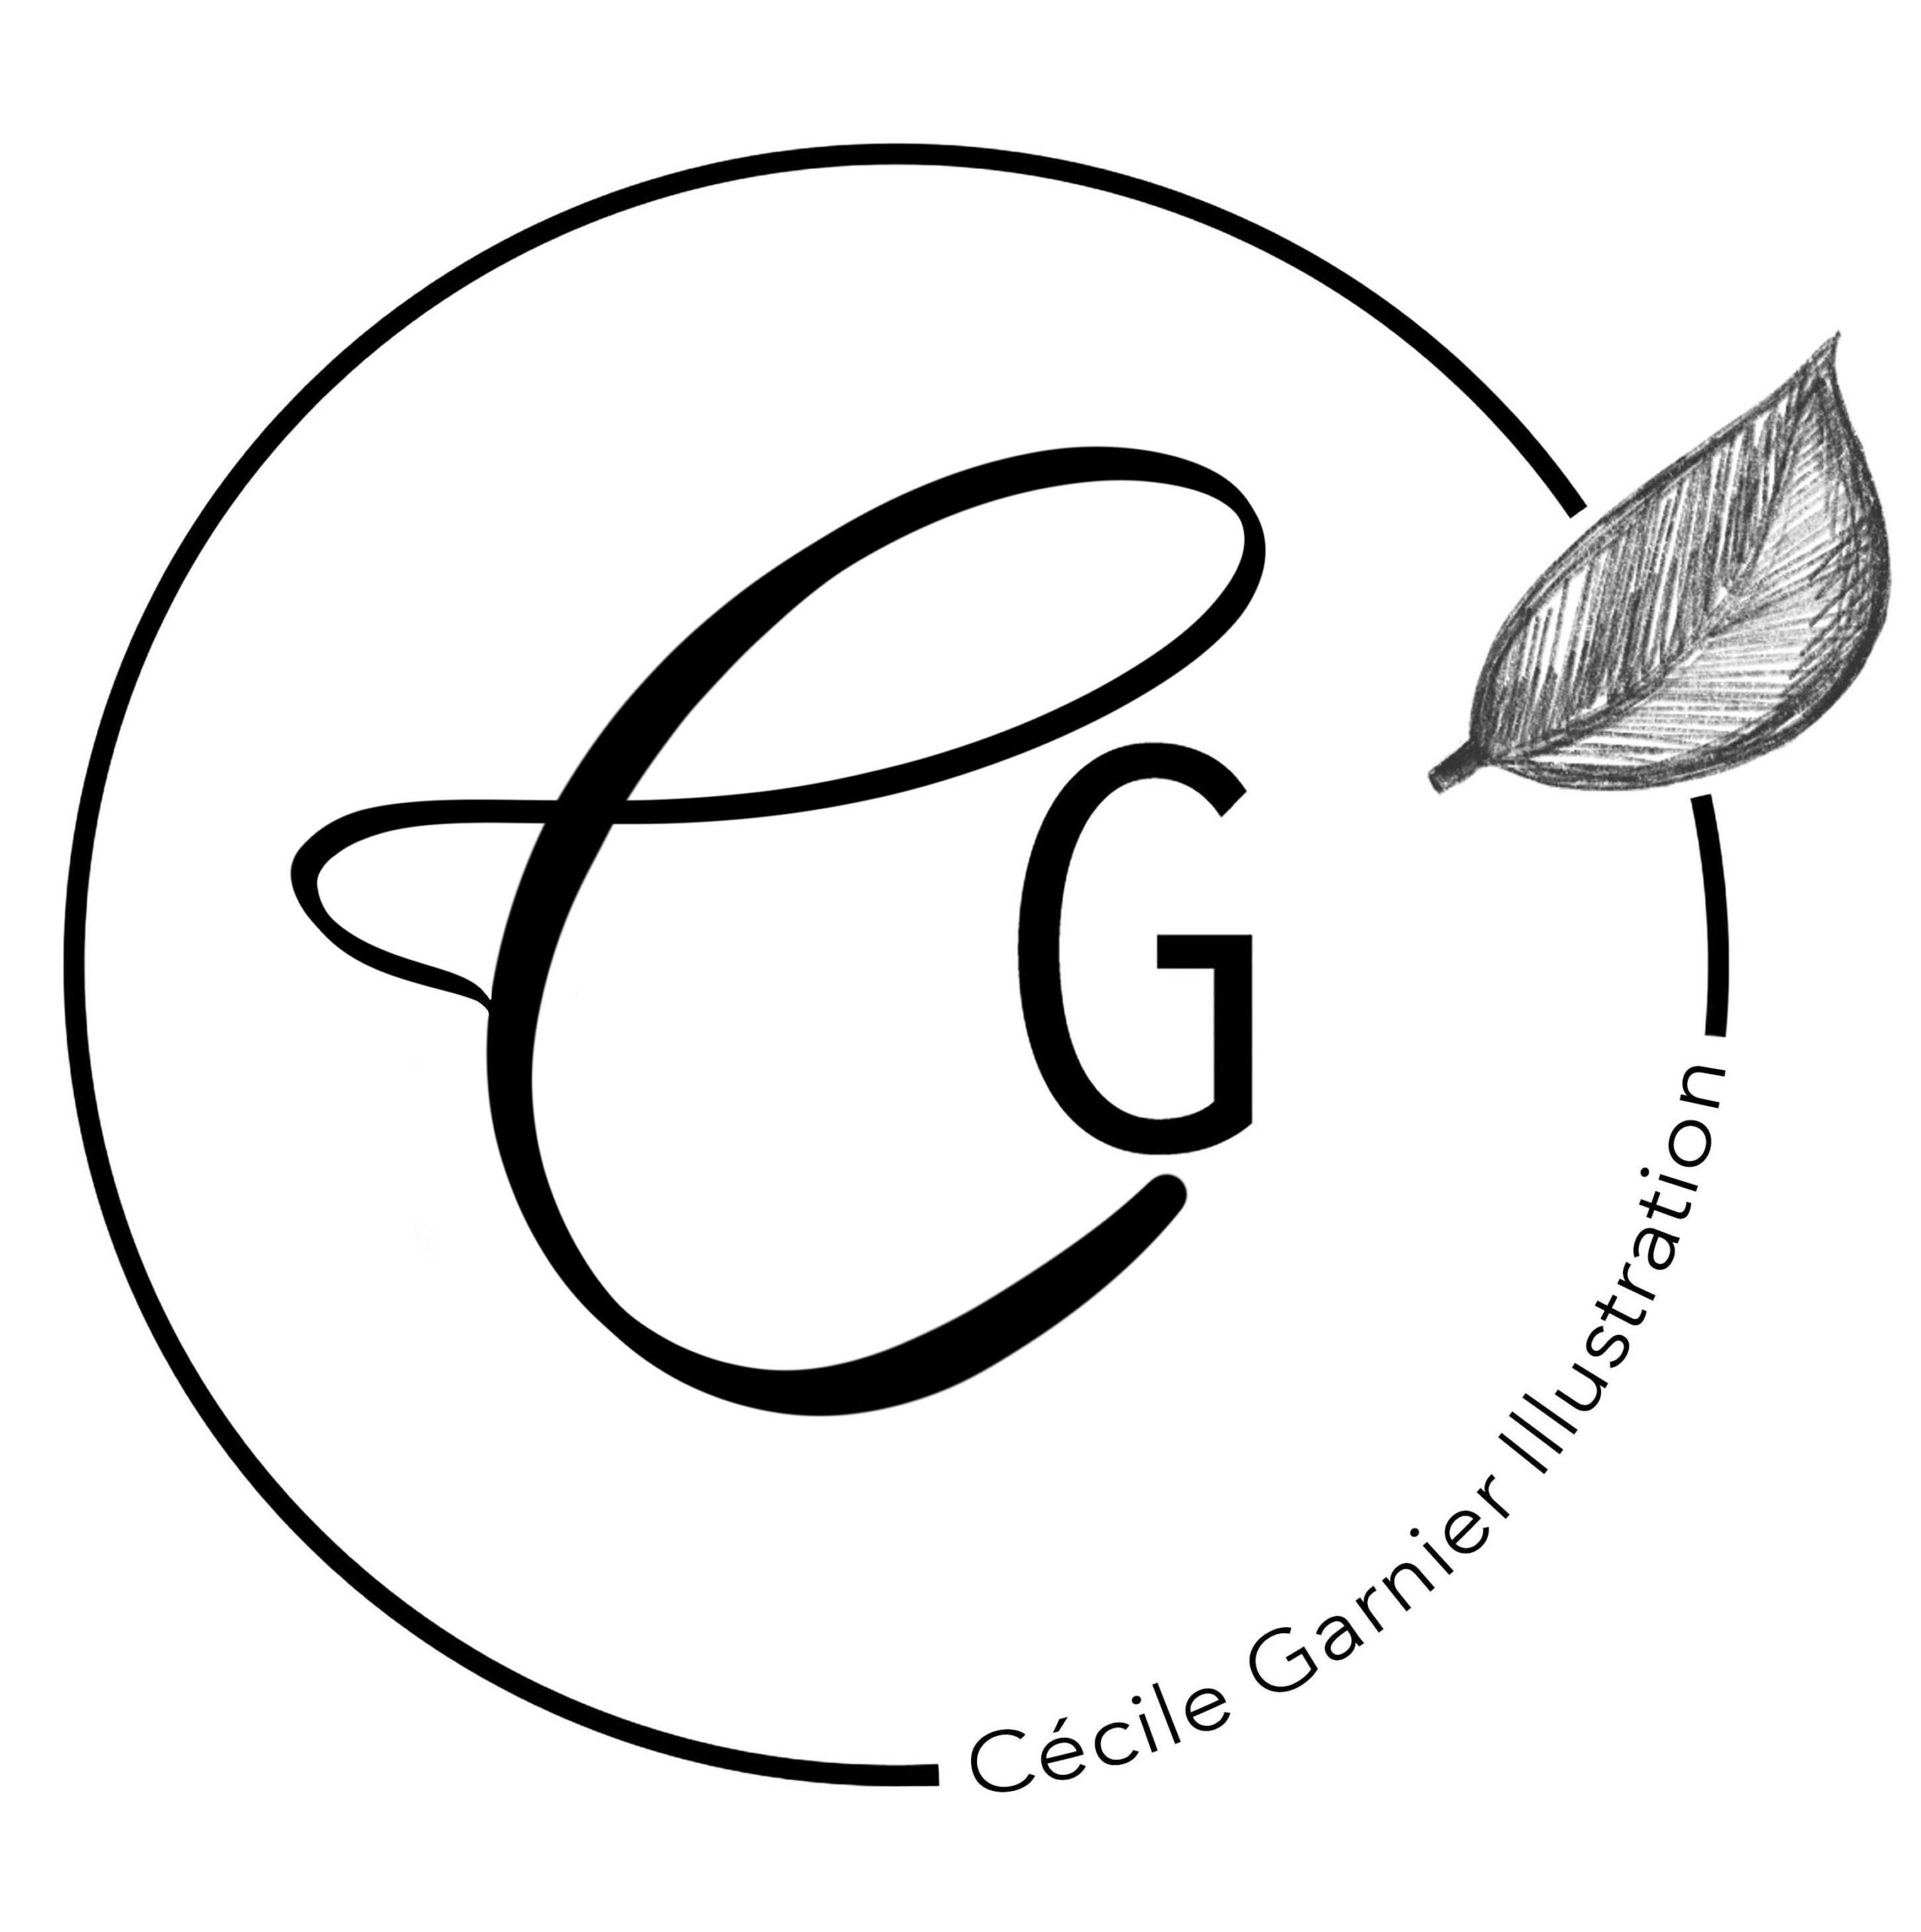 Cécile Garnier Illustration